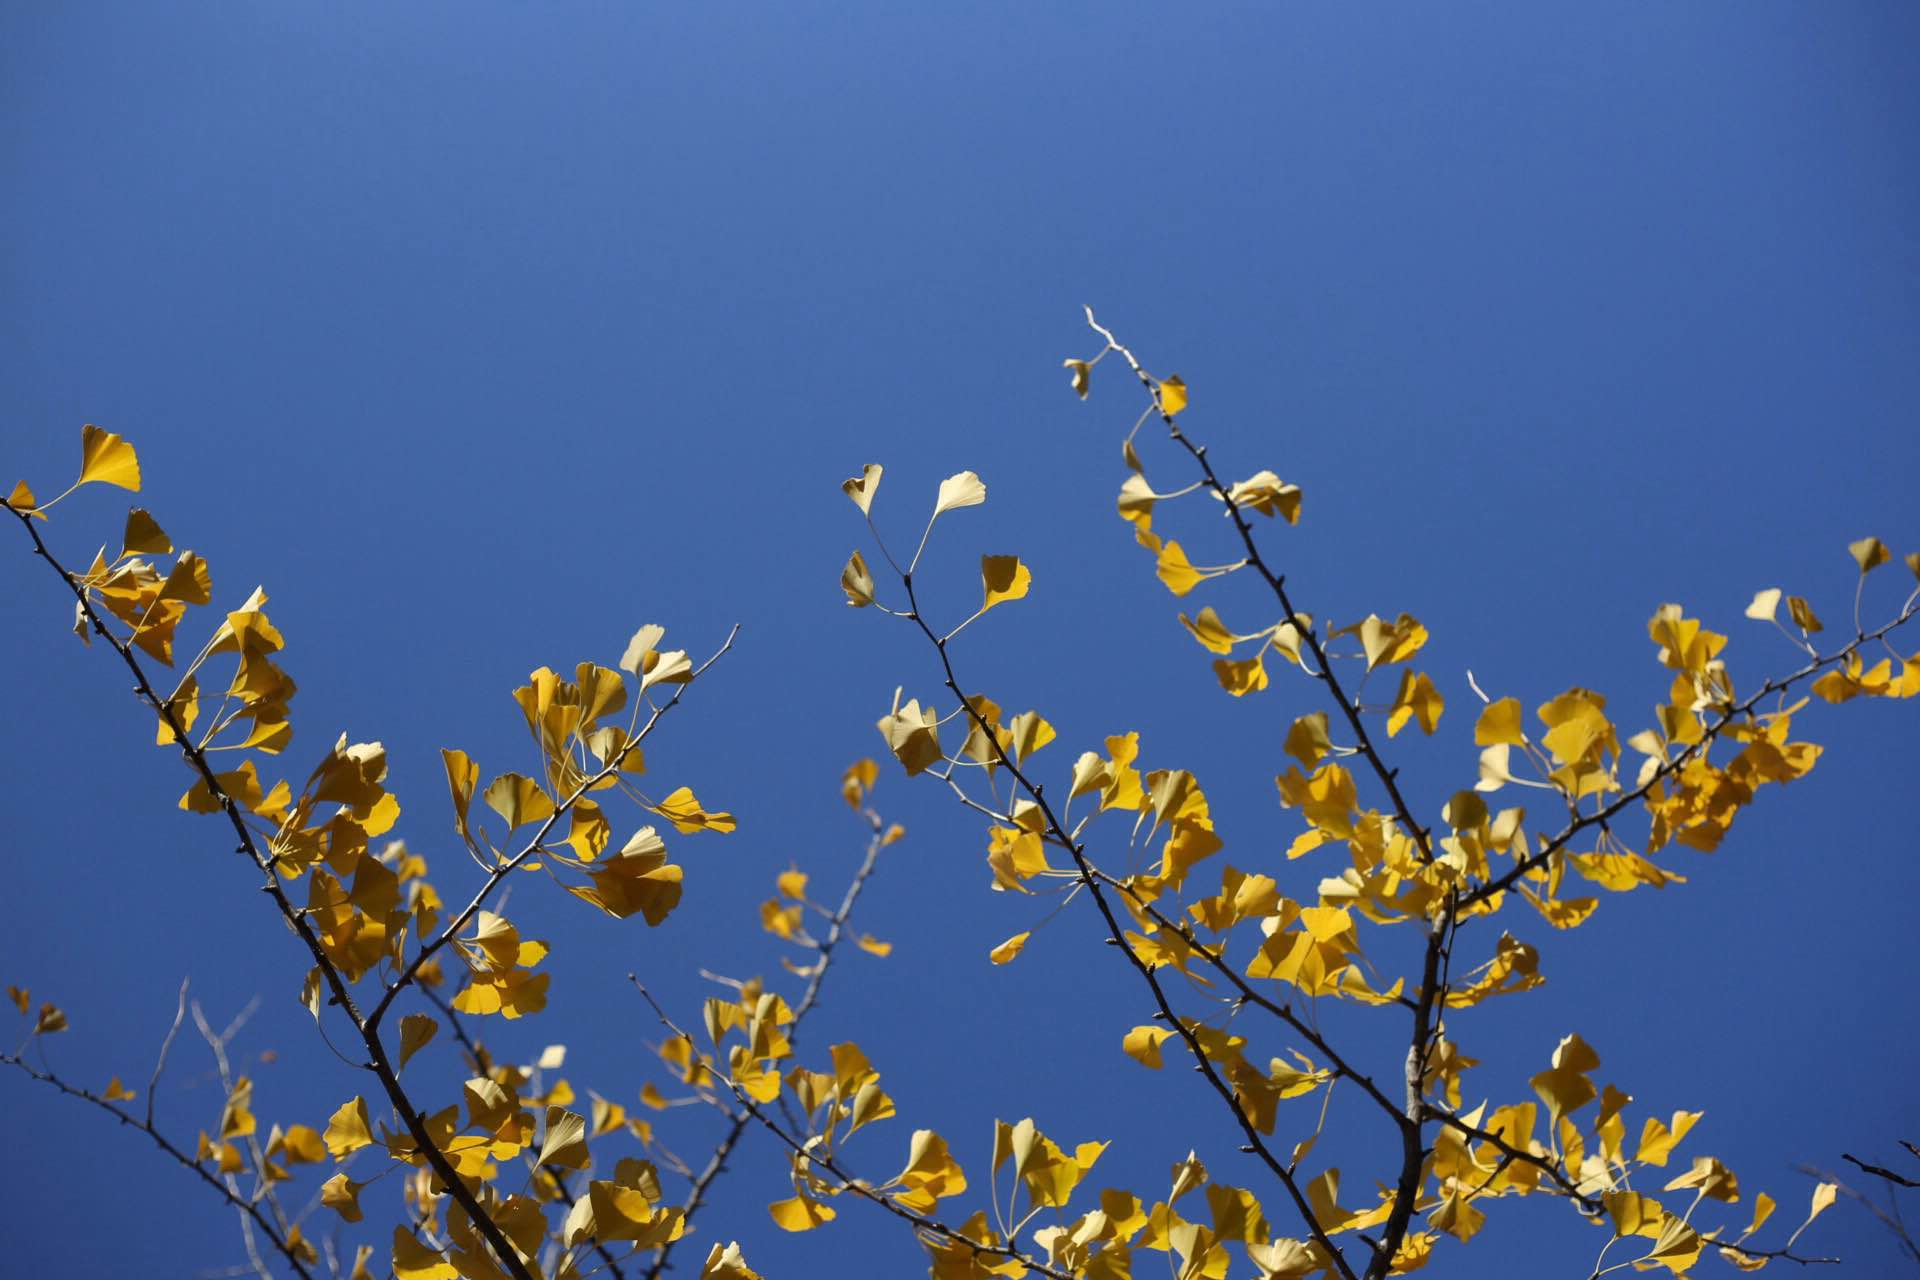 A gingko's beautiful yellow leaves against a bright blue sky